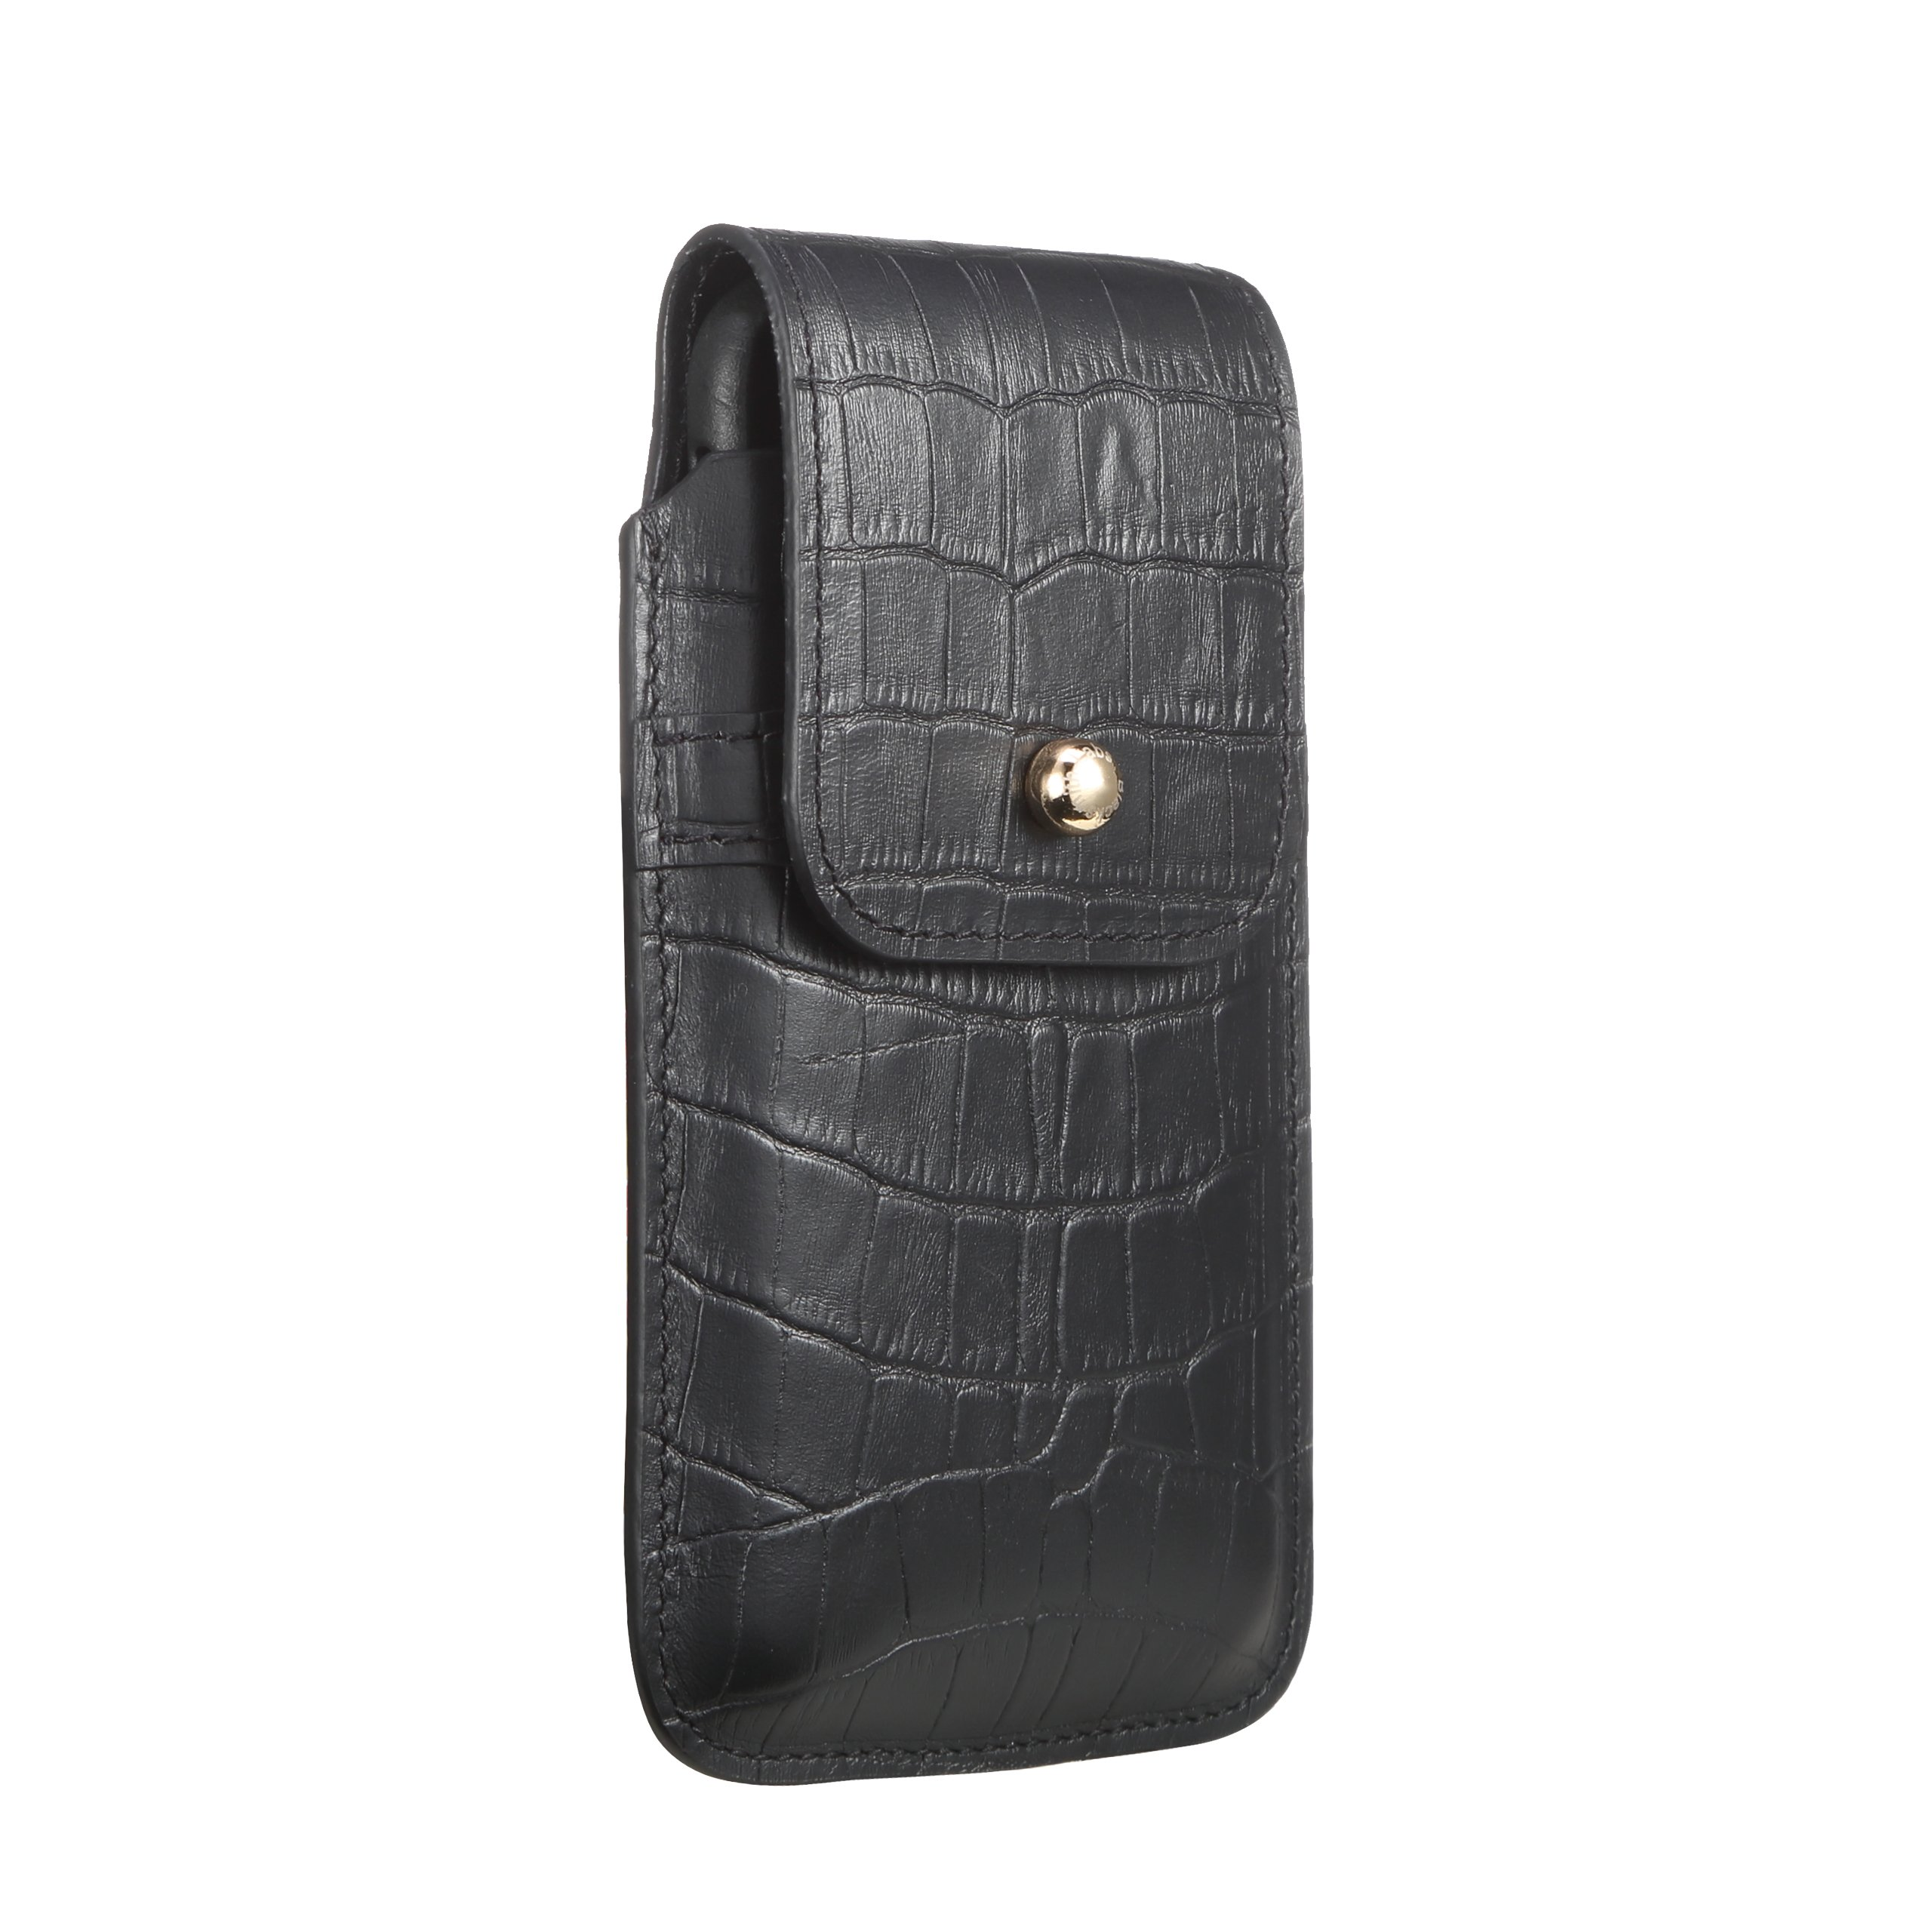 Blacksmith-Labs Barrett Mezzano 2017 Premium Genuine Leather Swivel Belt Clip Holster for Apple iPhone 6/6s/7 (4.7'') for use with Apple Leather Case - Black Croc Embossed Cowhide/Gold Belt Clip